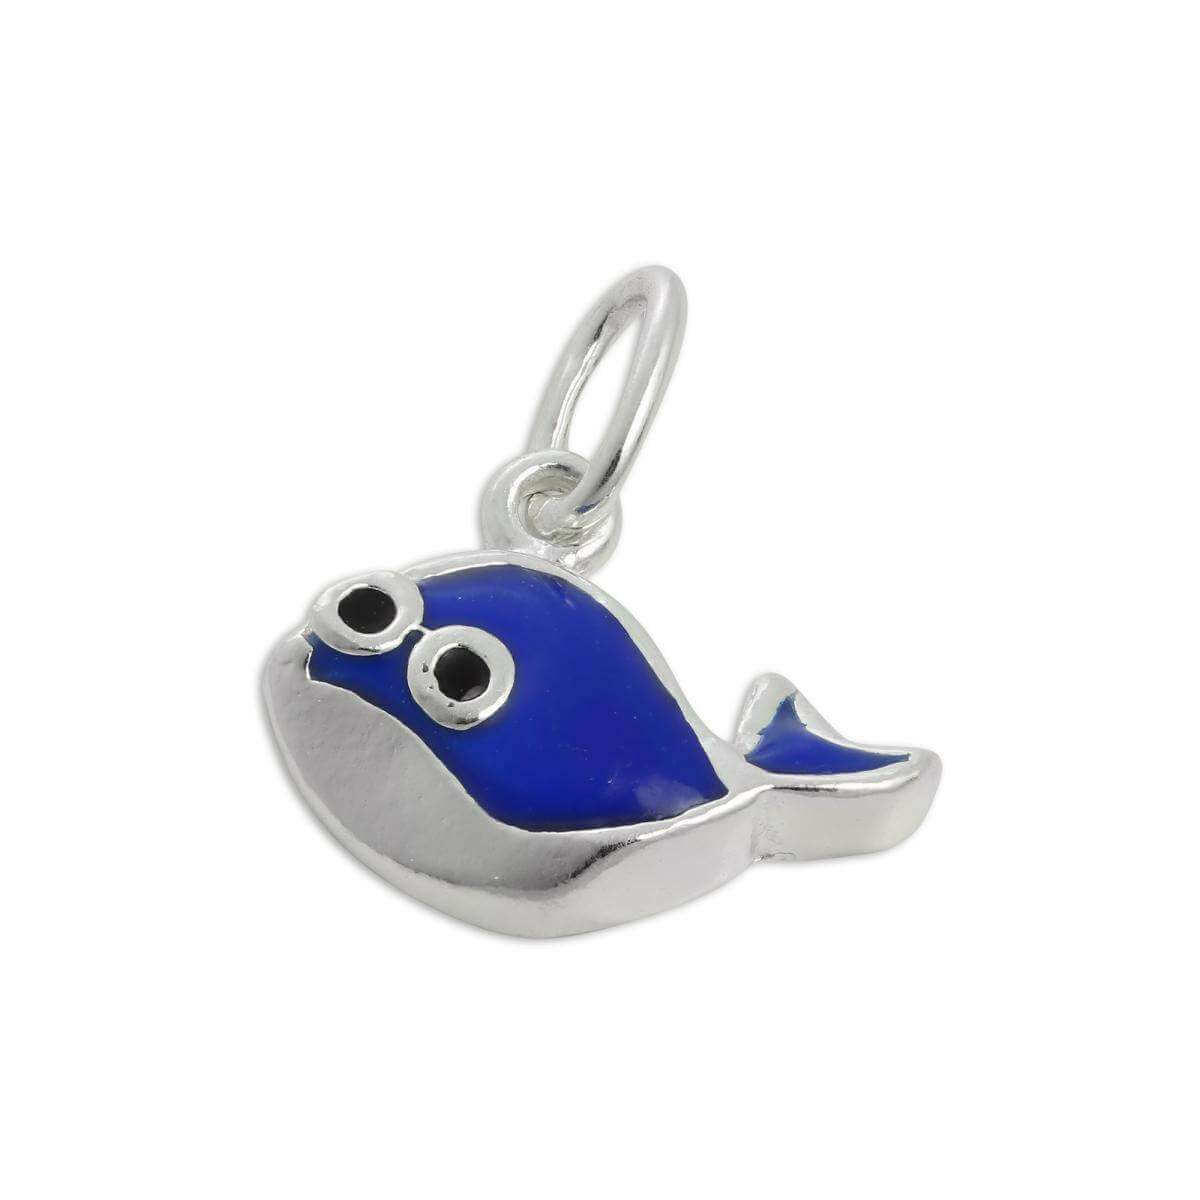 Small Sterling Silver & Blue Enamel Whale Charm